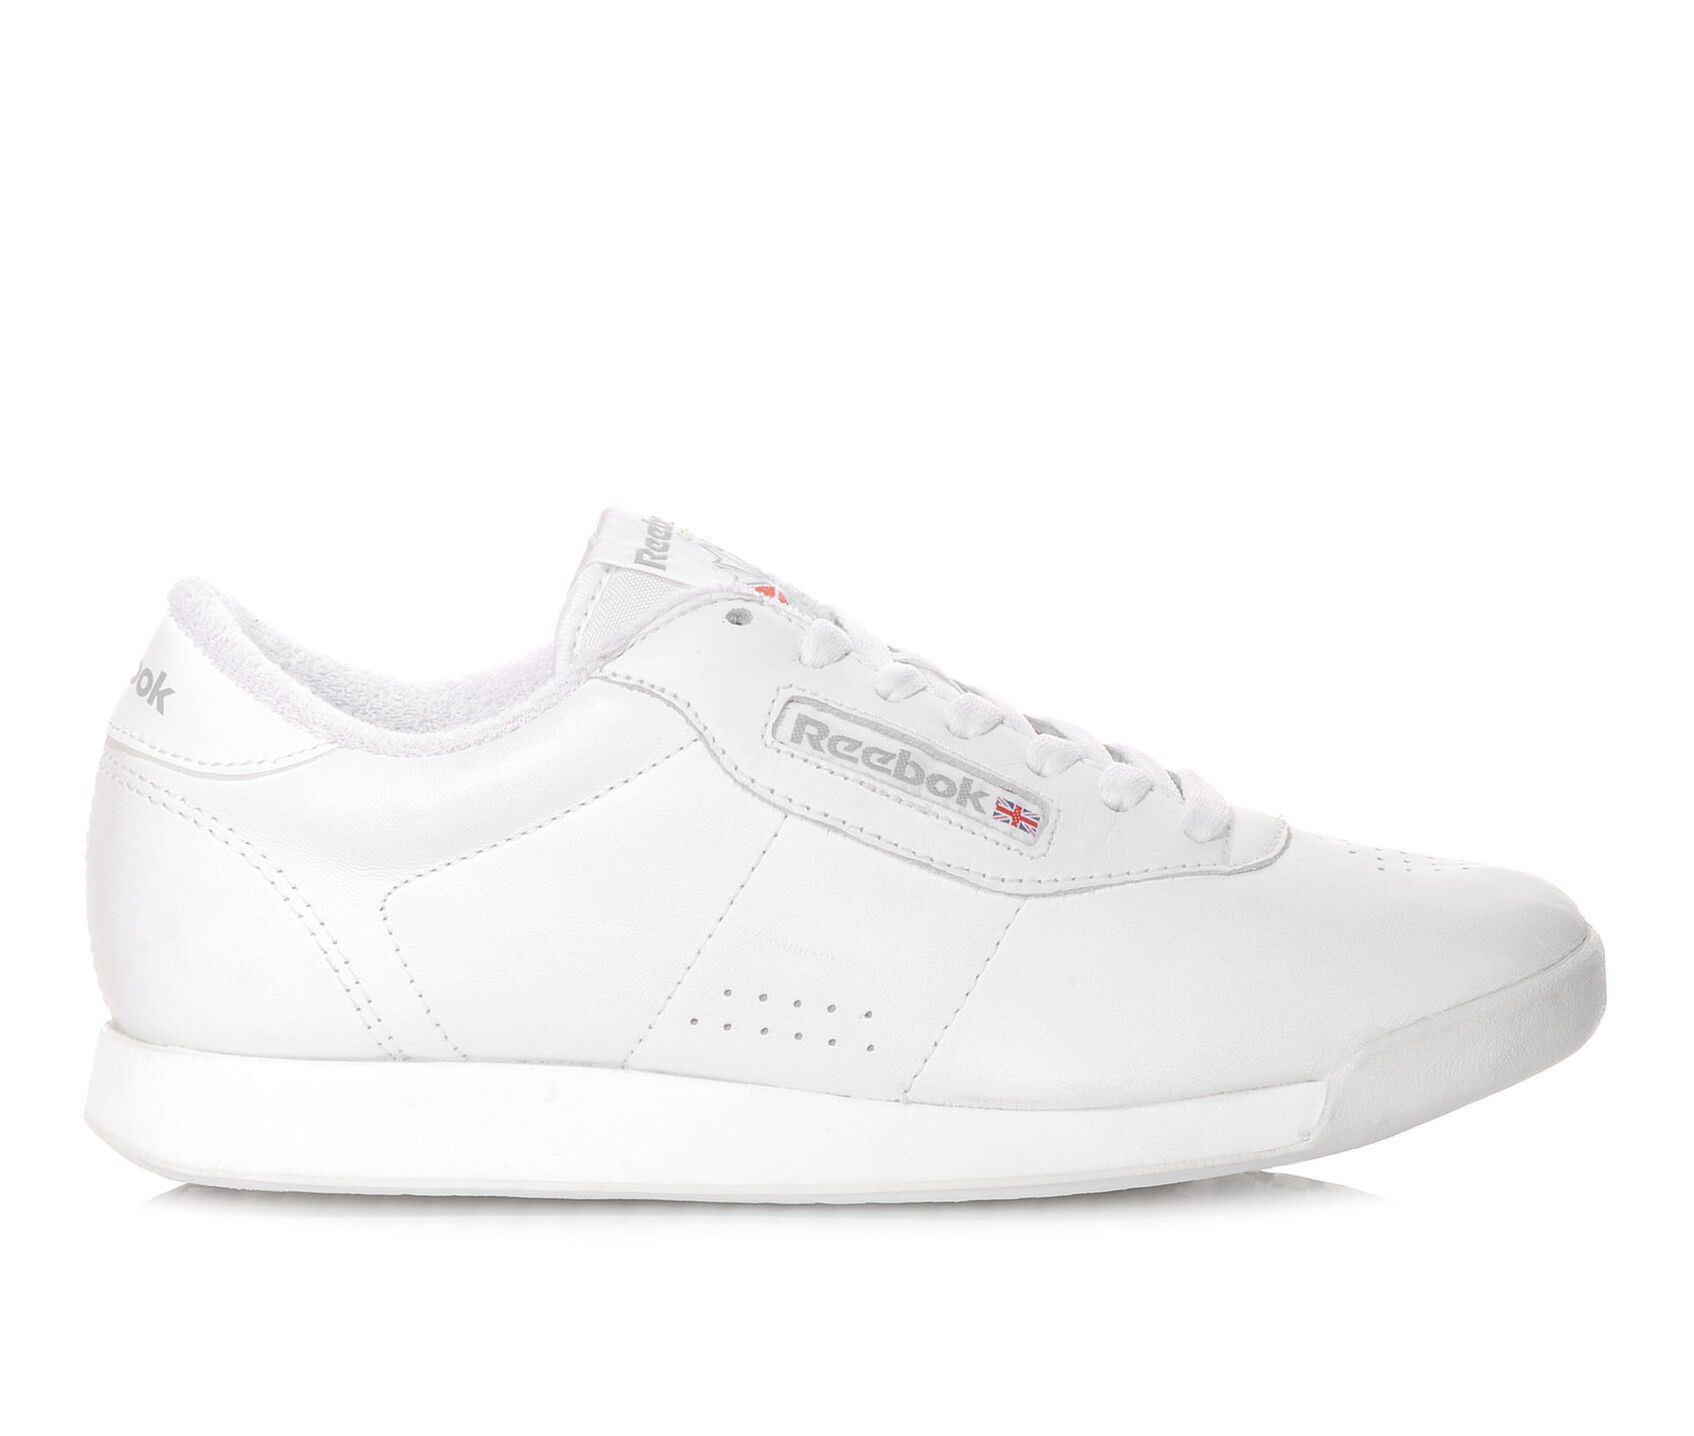 b8a131efa1cc Women s Reebok Princess II Retro Sneakers